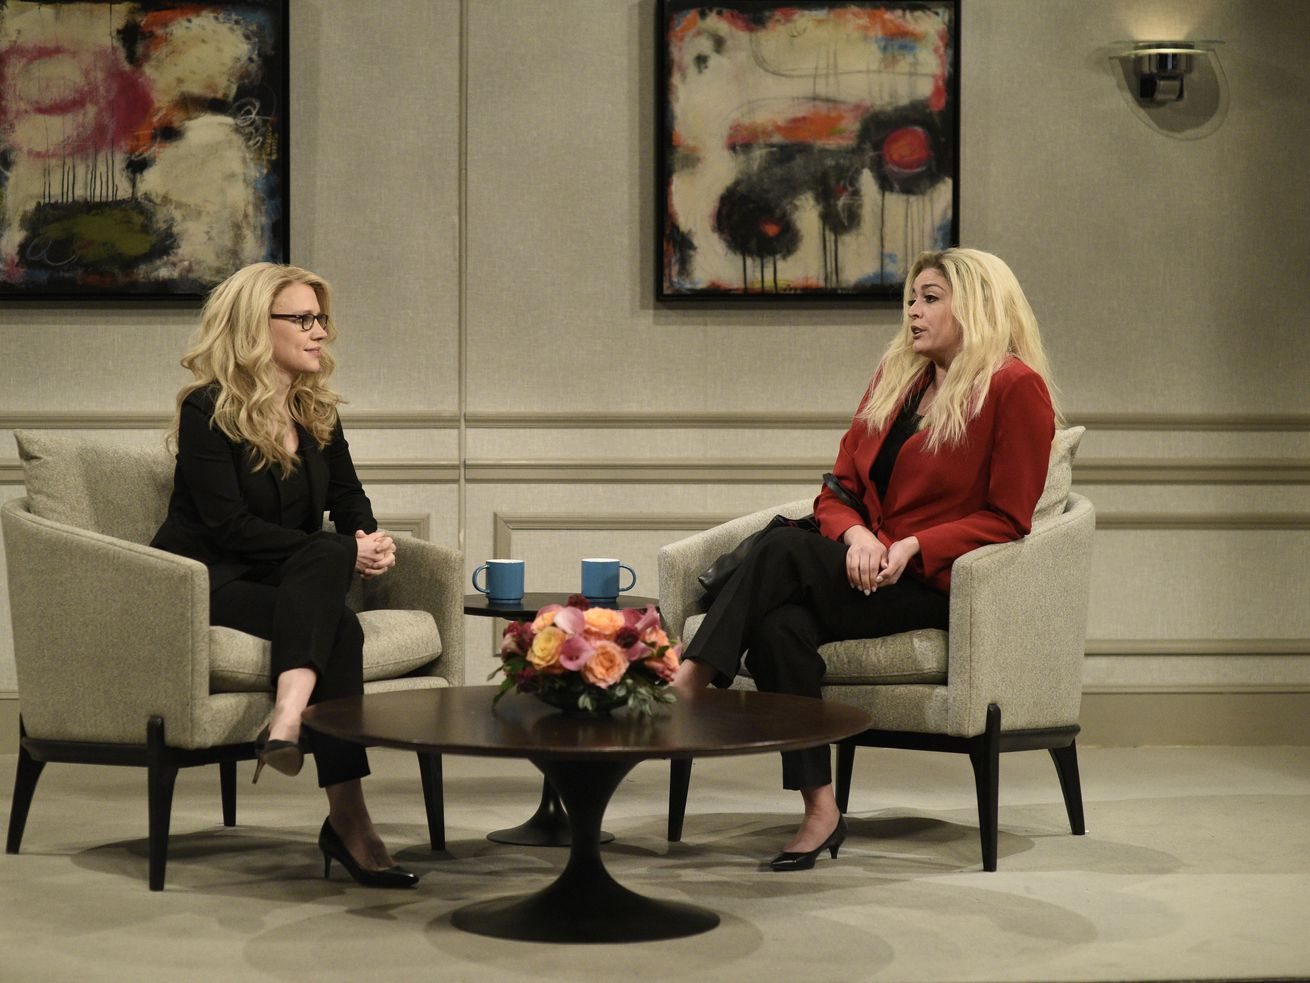 Cecily Strong, playing US Rep. Marjorie Taylor Green, speaks to Kate McKinnon, playing herself, in Saturday Night Live's January 30 cold open.